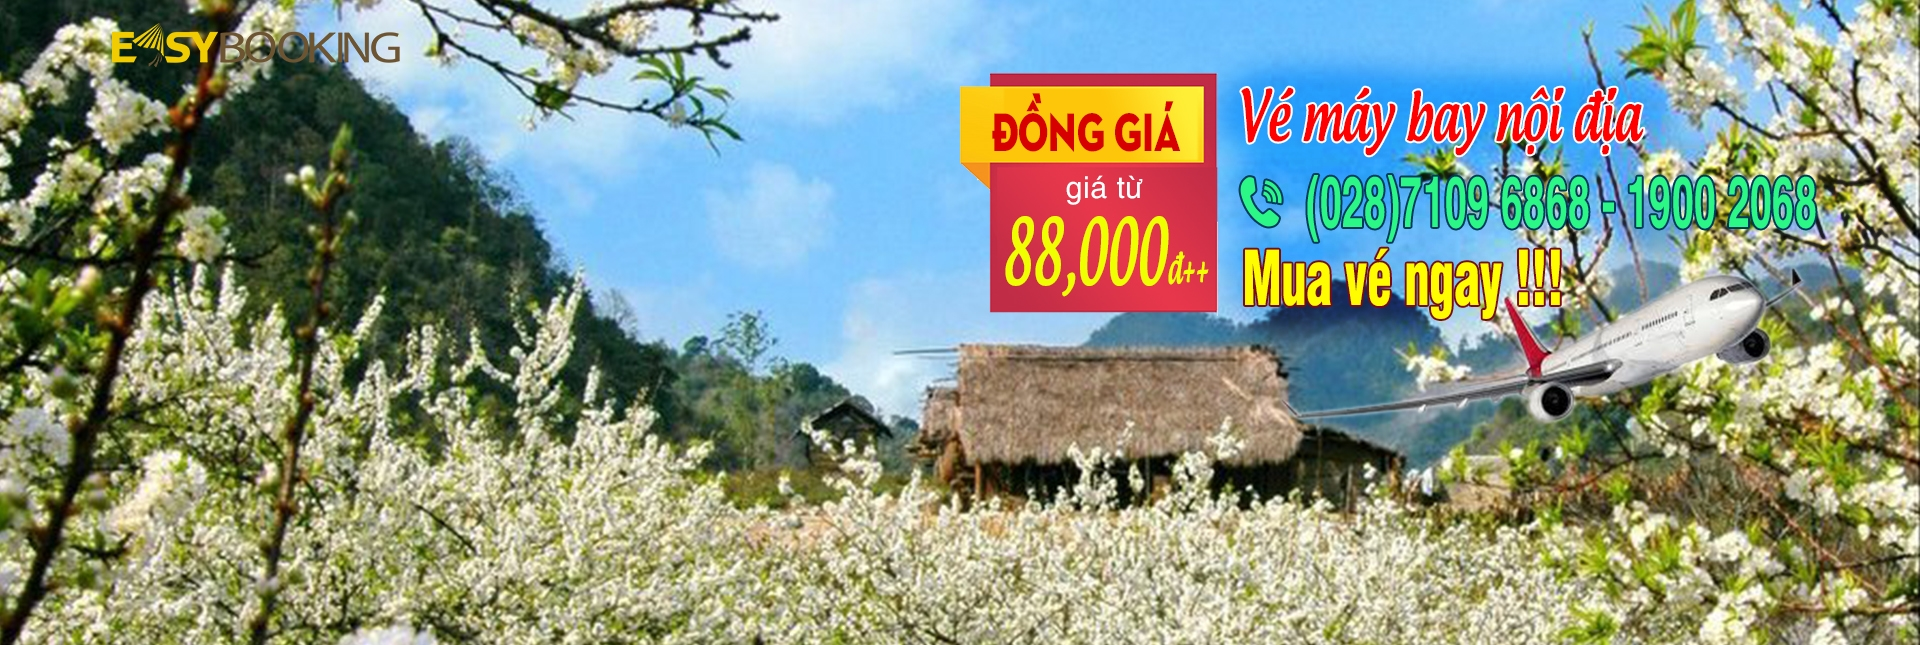 ve may bay noi dia dong gia 88k - vietnam airlines - easybooking - vn